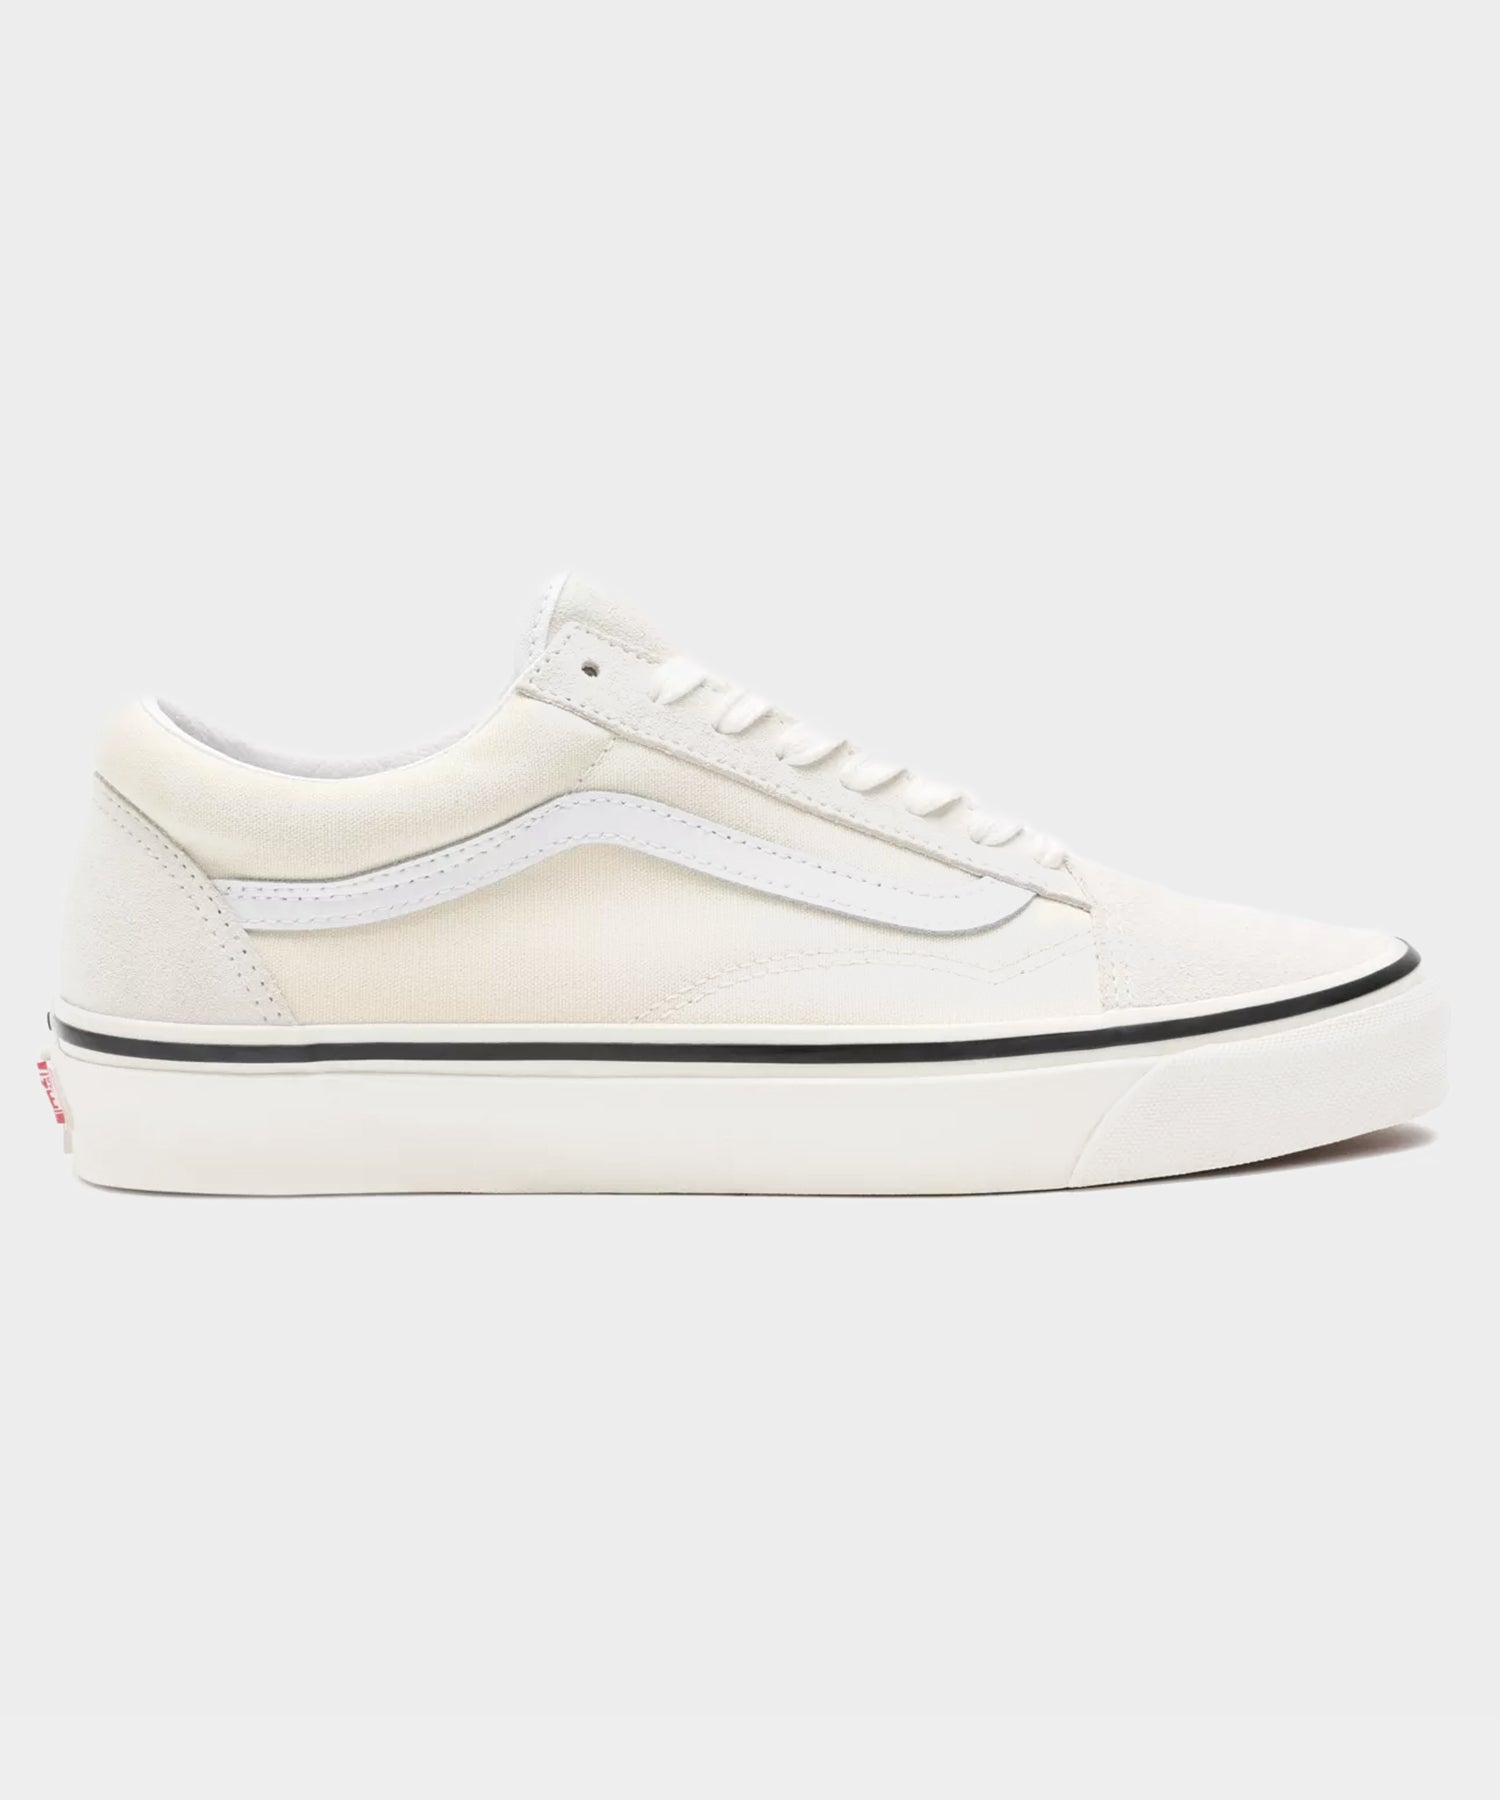 VANS ANAHEIM FACTORY OLD SKOOL 36 DX in WHITE